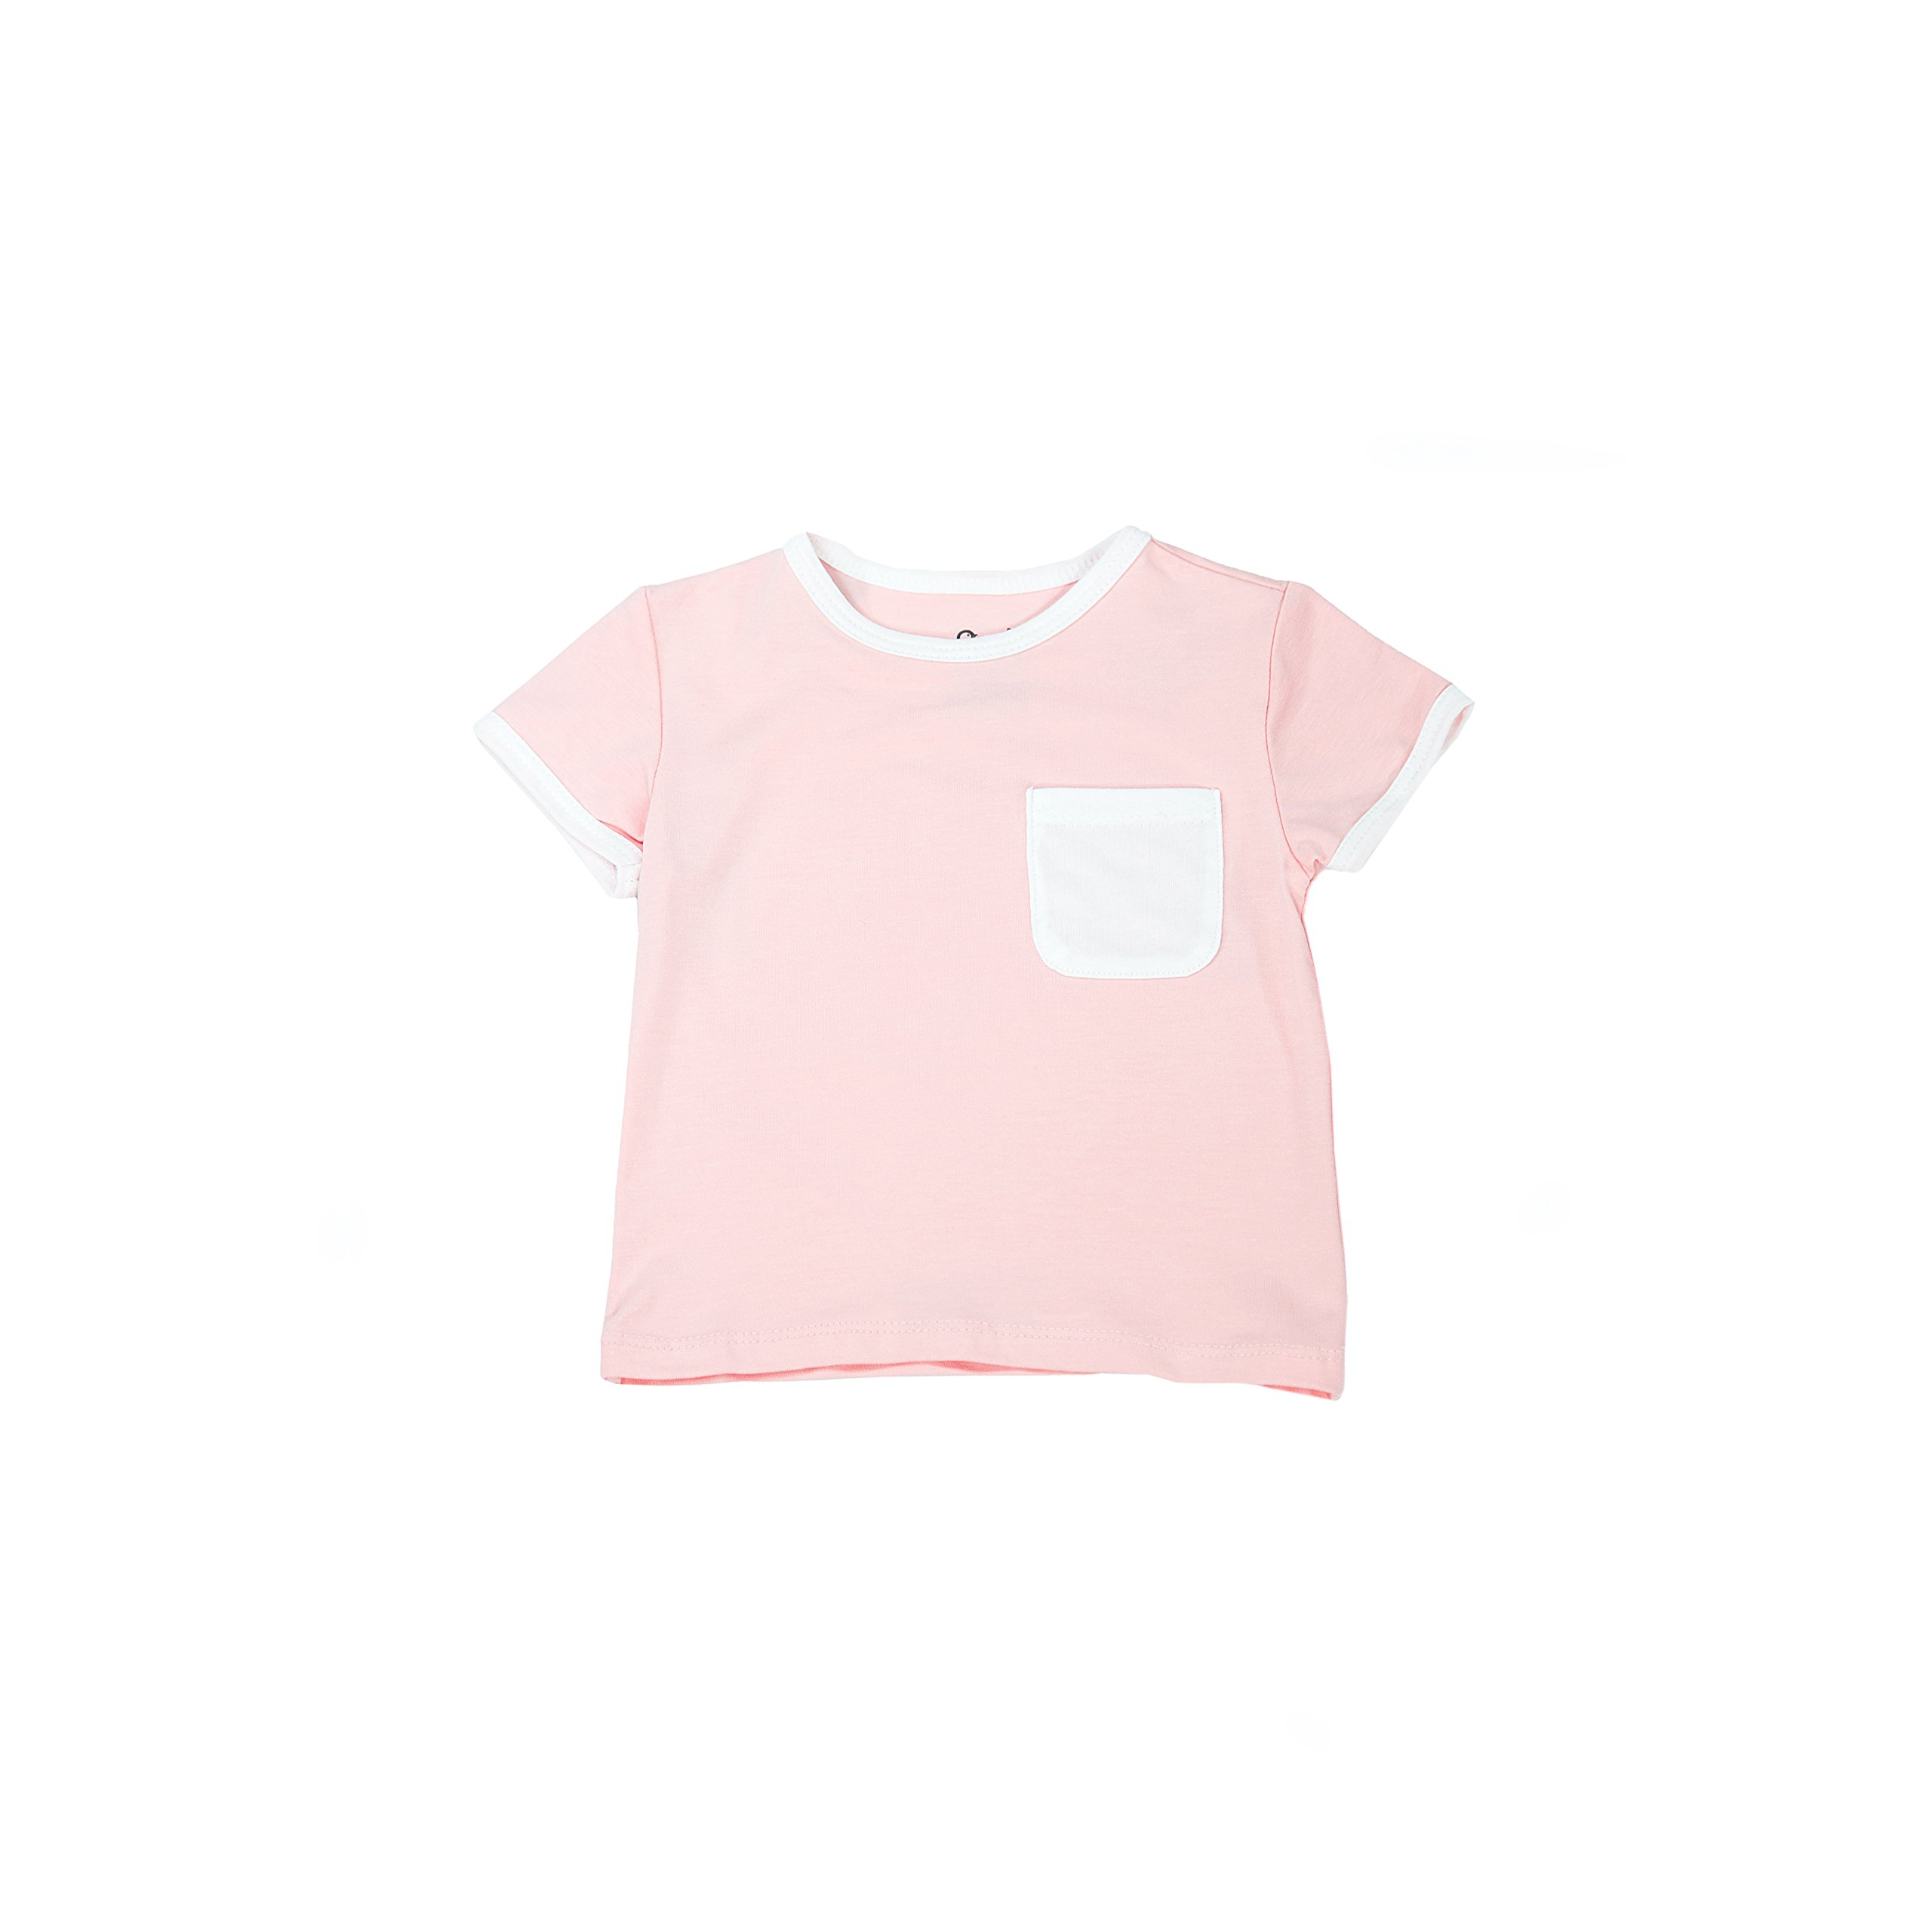 Lark Adventurewear: Soft Bamboo Pocket T-Shirt (Sizes 12M - 4T)